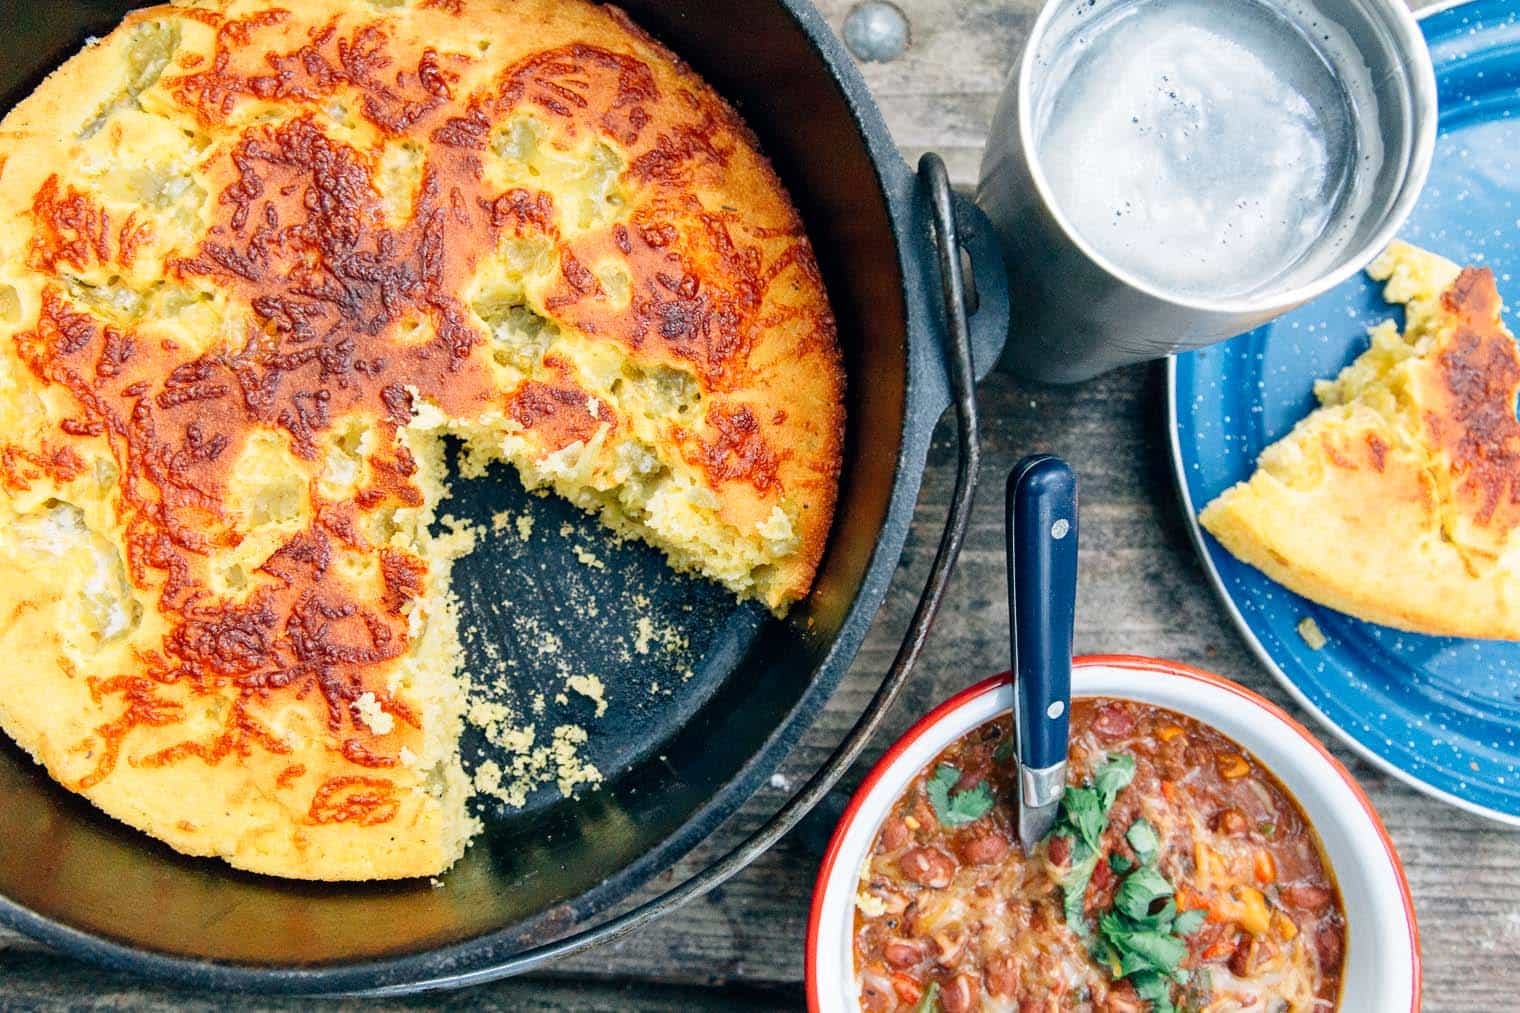 This Dutch Oven Cornbread recipe is perfect for camping trips next to a bowl of chili!